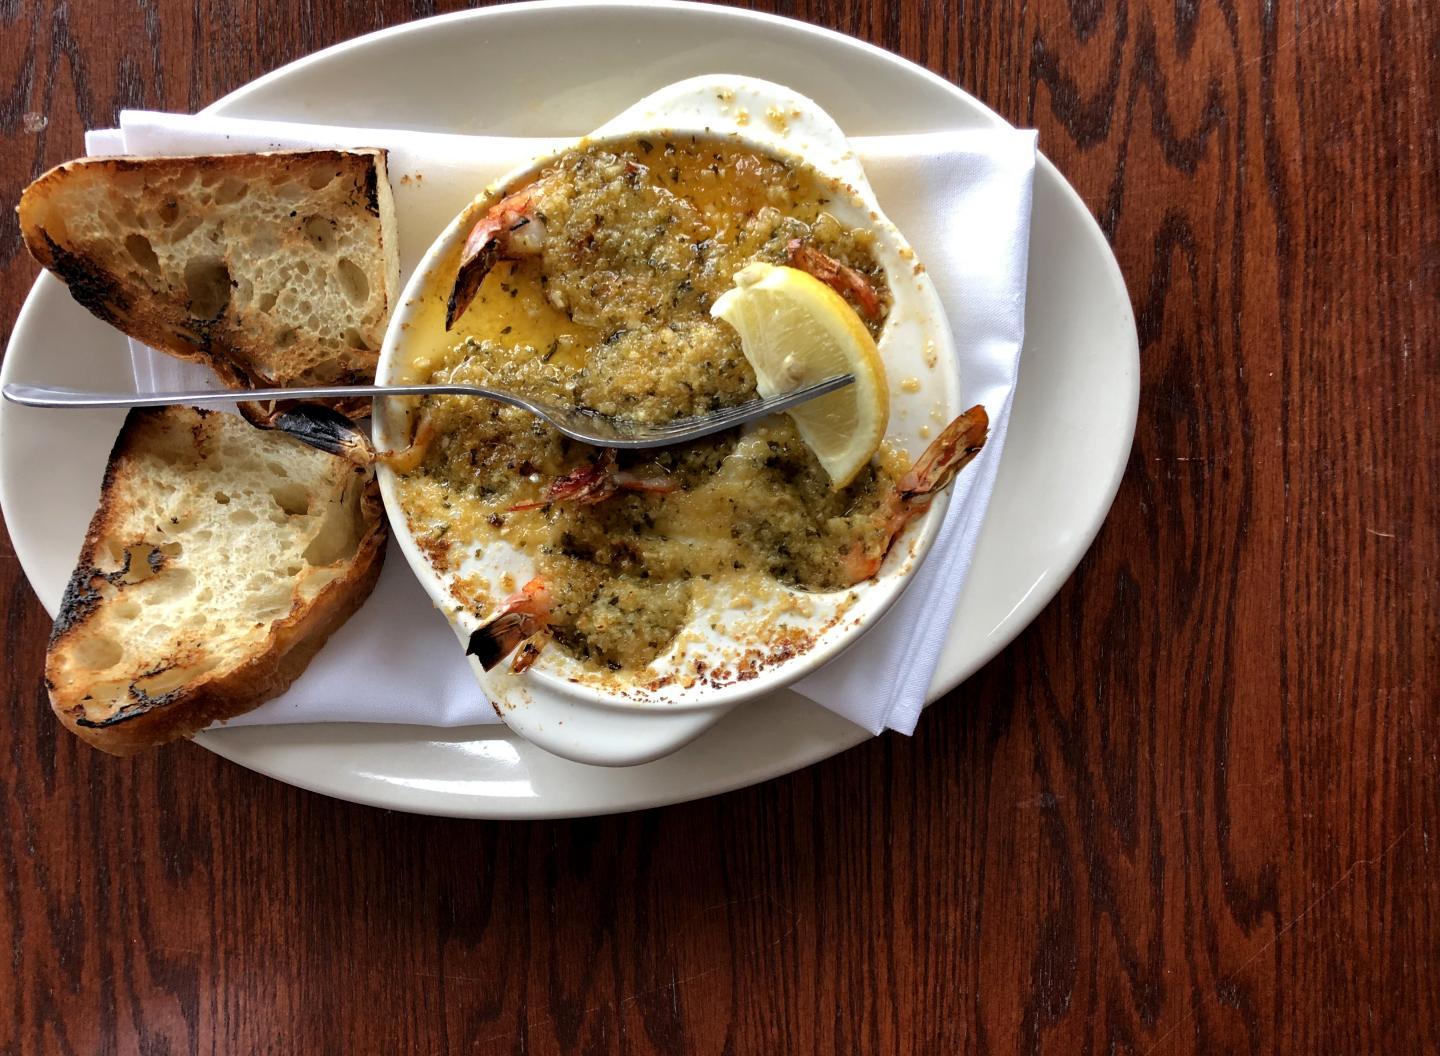 shrimp in butter in a escargot plate with grilled bread at shaw's crab house